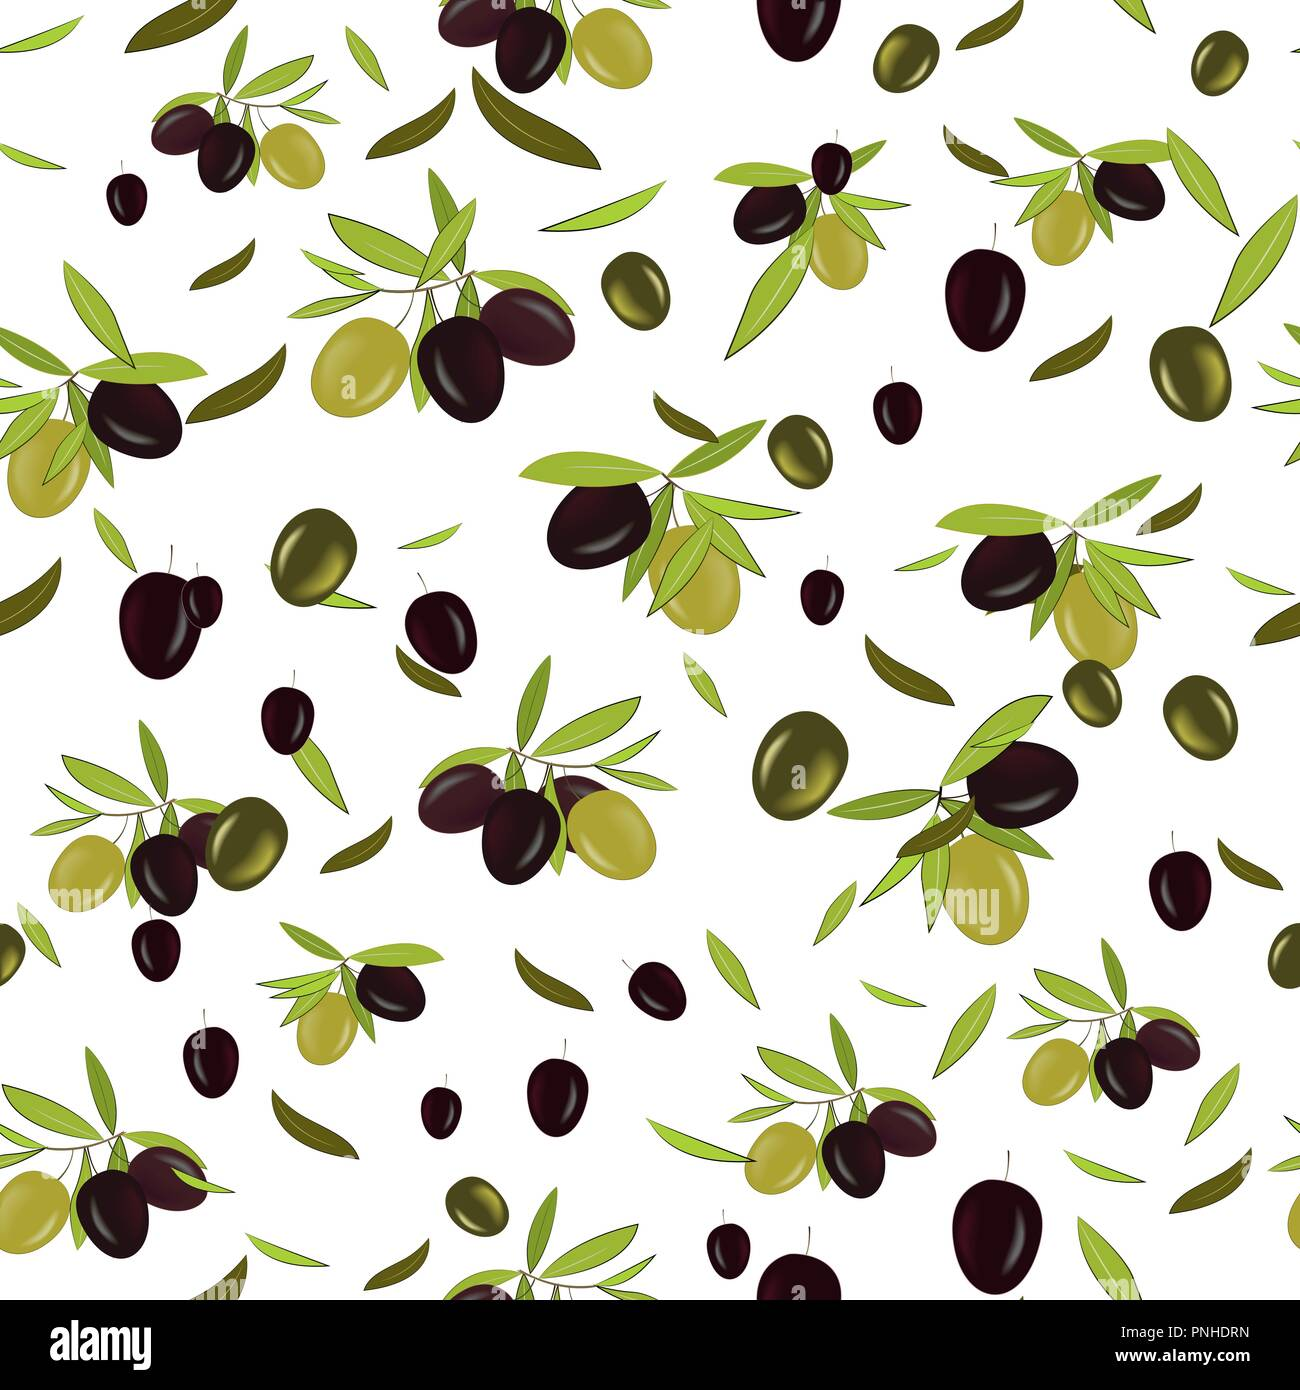 Olive branch seamless pattern, olive background. Mediterranean food wallpaper. Illustration for wrapping, wallpaper or print. Vector - Stock Vector